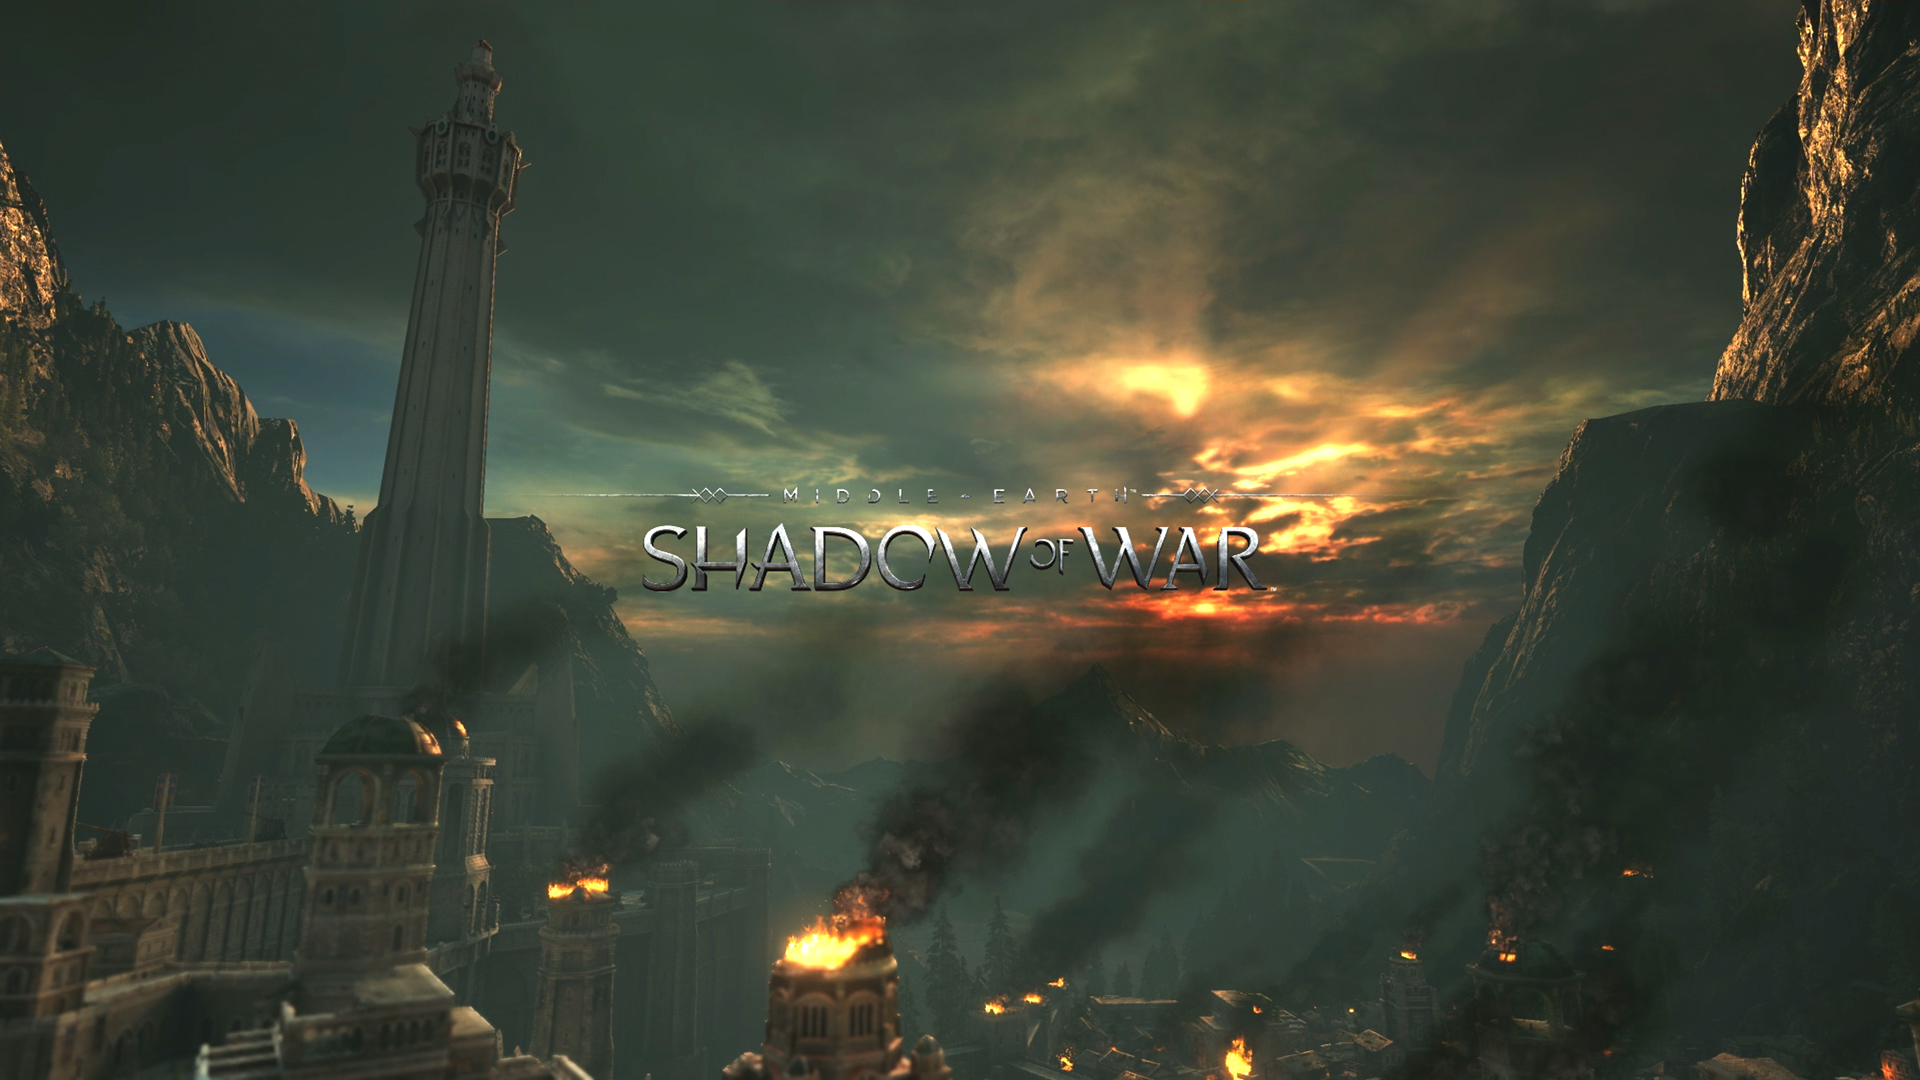 Middle-earth: Shadow of War Xbox One X